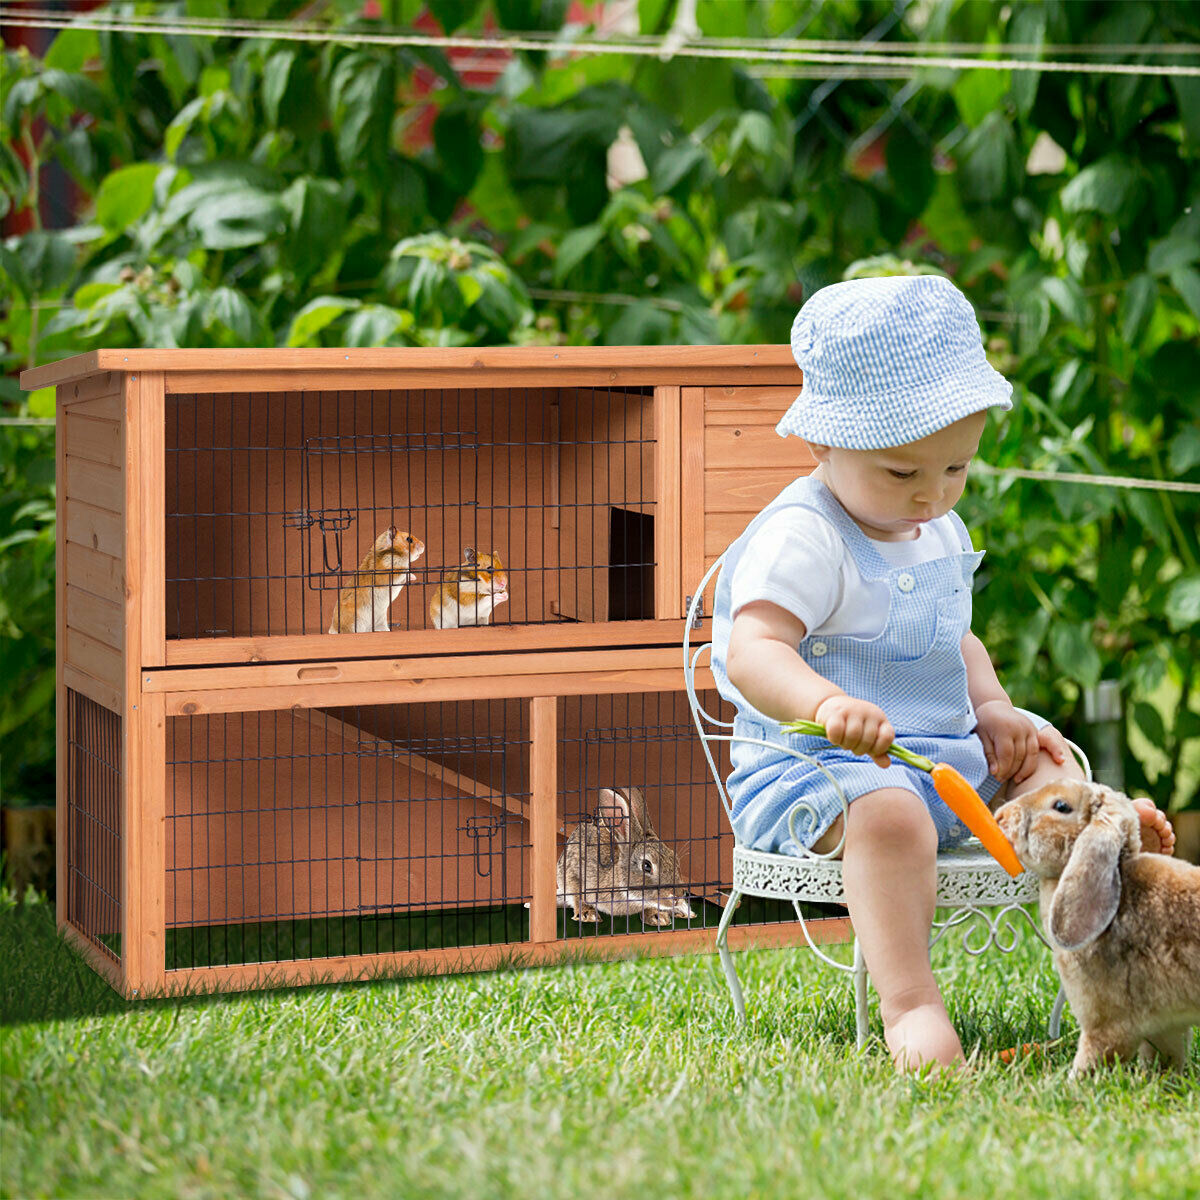 Gymax Large Chicken Coop Rabbit Hutch Garden Backyard Wood Hen House Poultry Cage - image 4 of 10